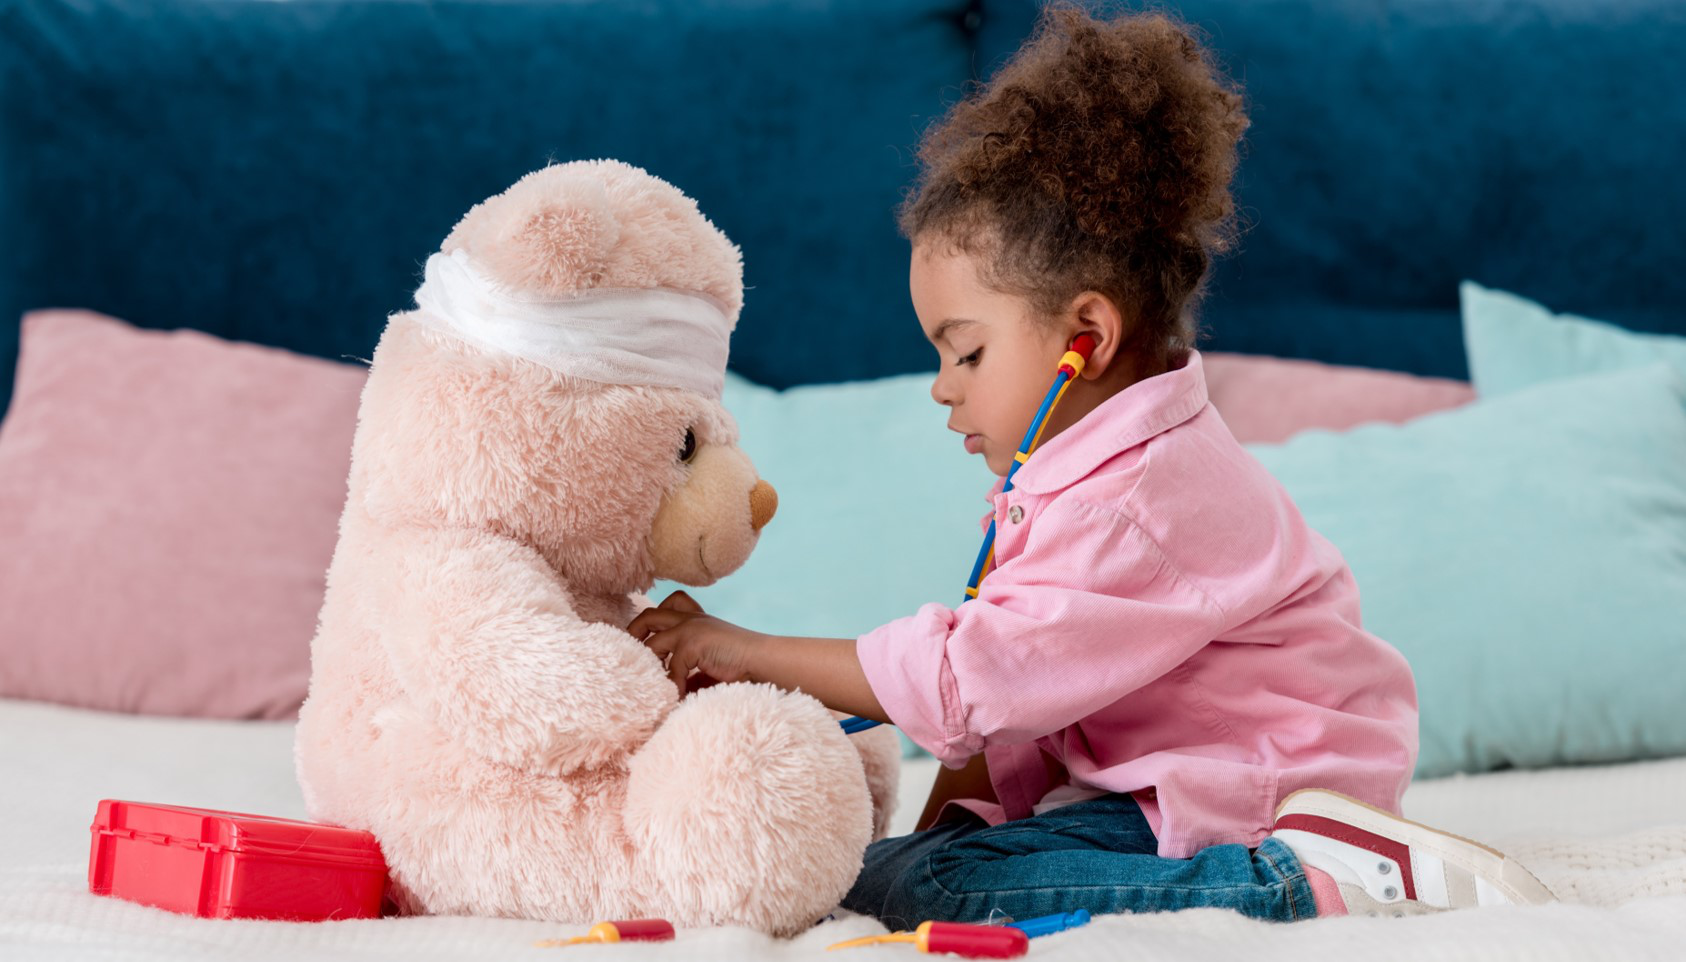 Child playing hospitals with her teddy